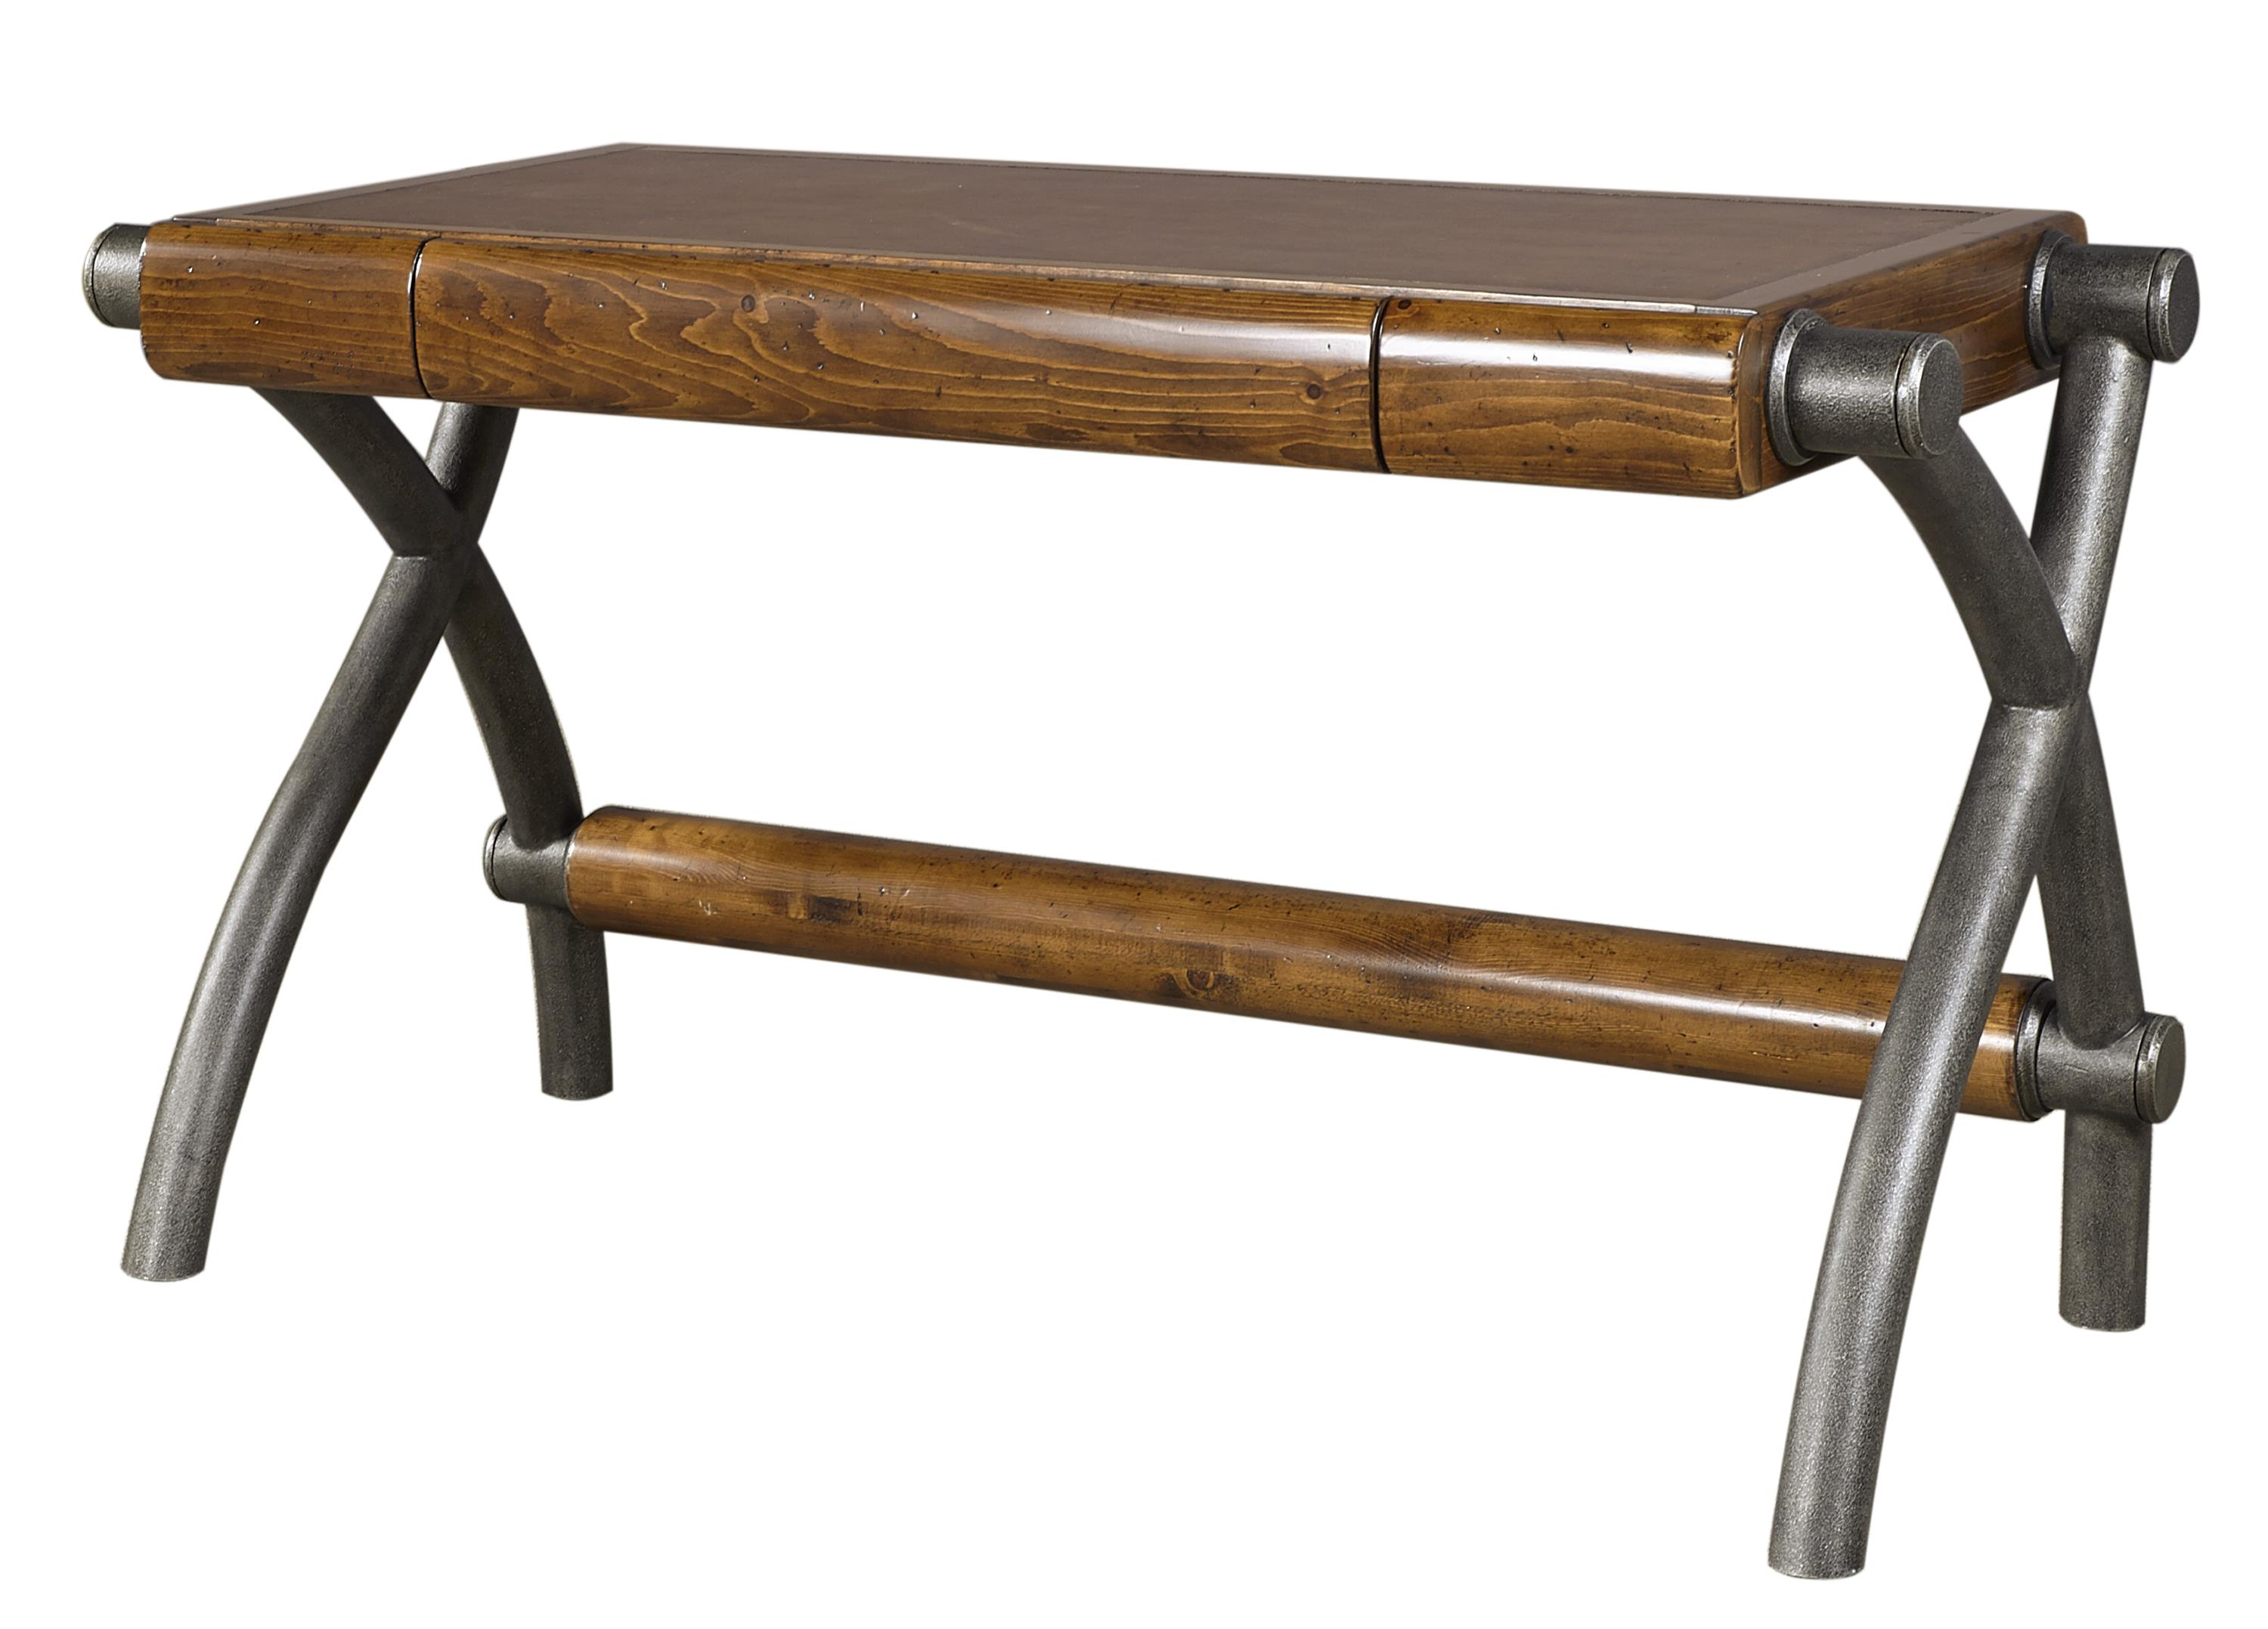 "Aspenhome Rockland 55"" Writing Desk  - Item Number: I58-355WD"